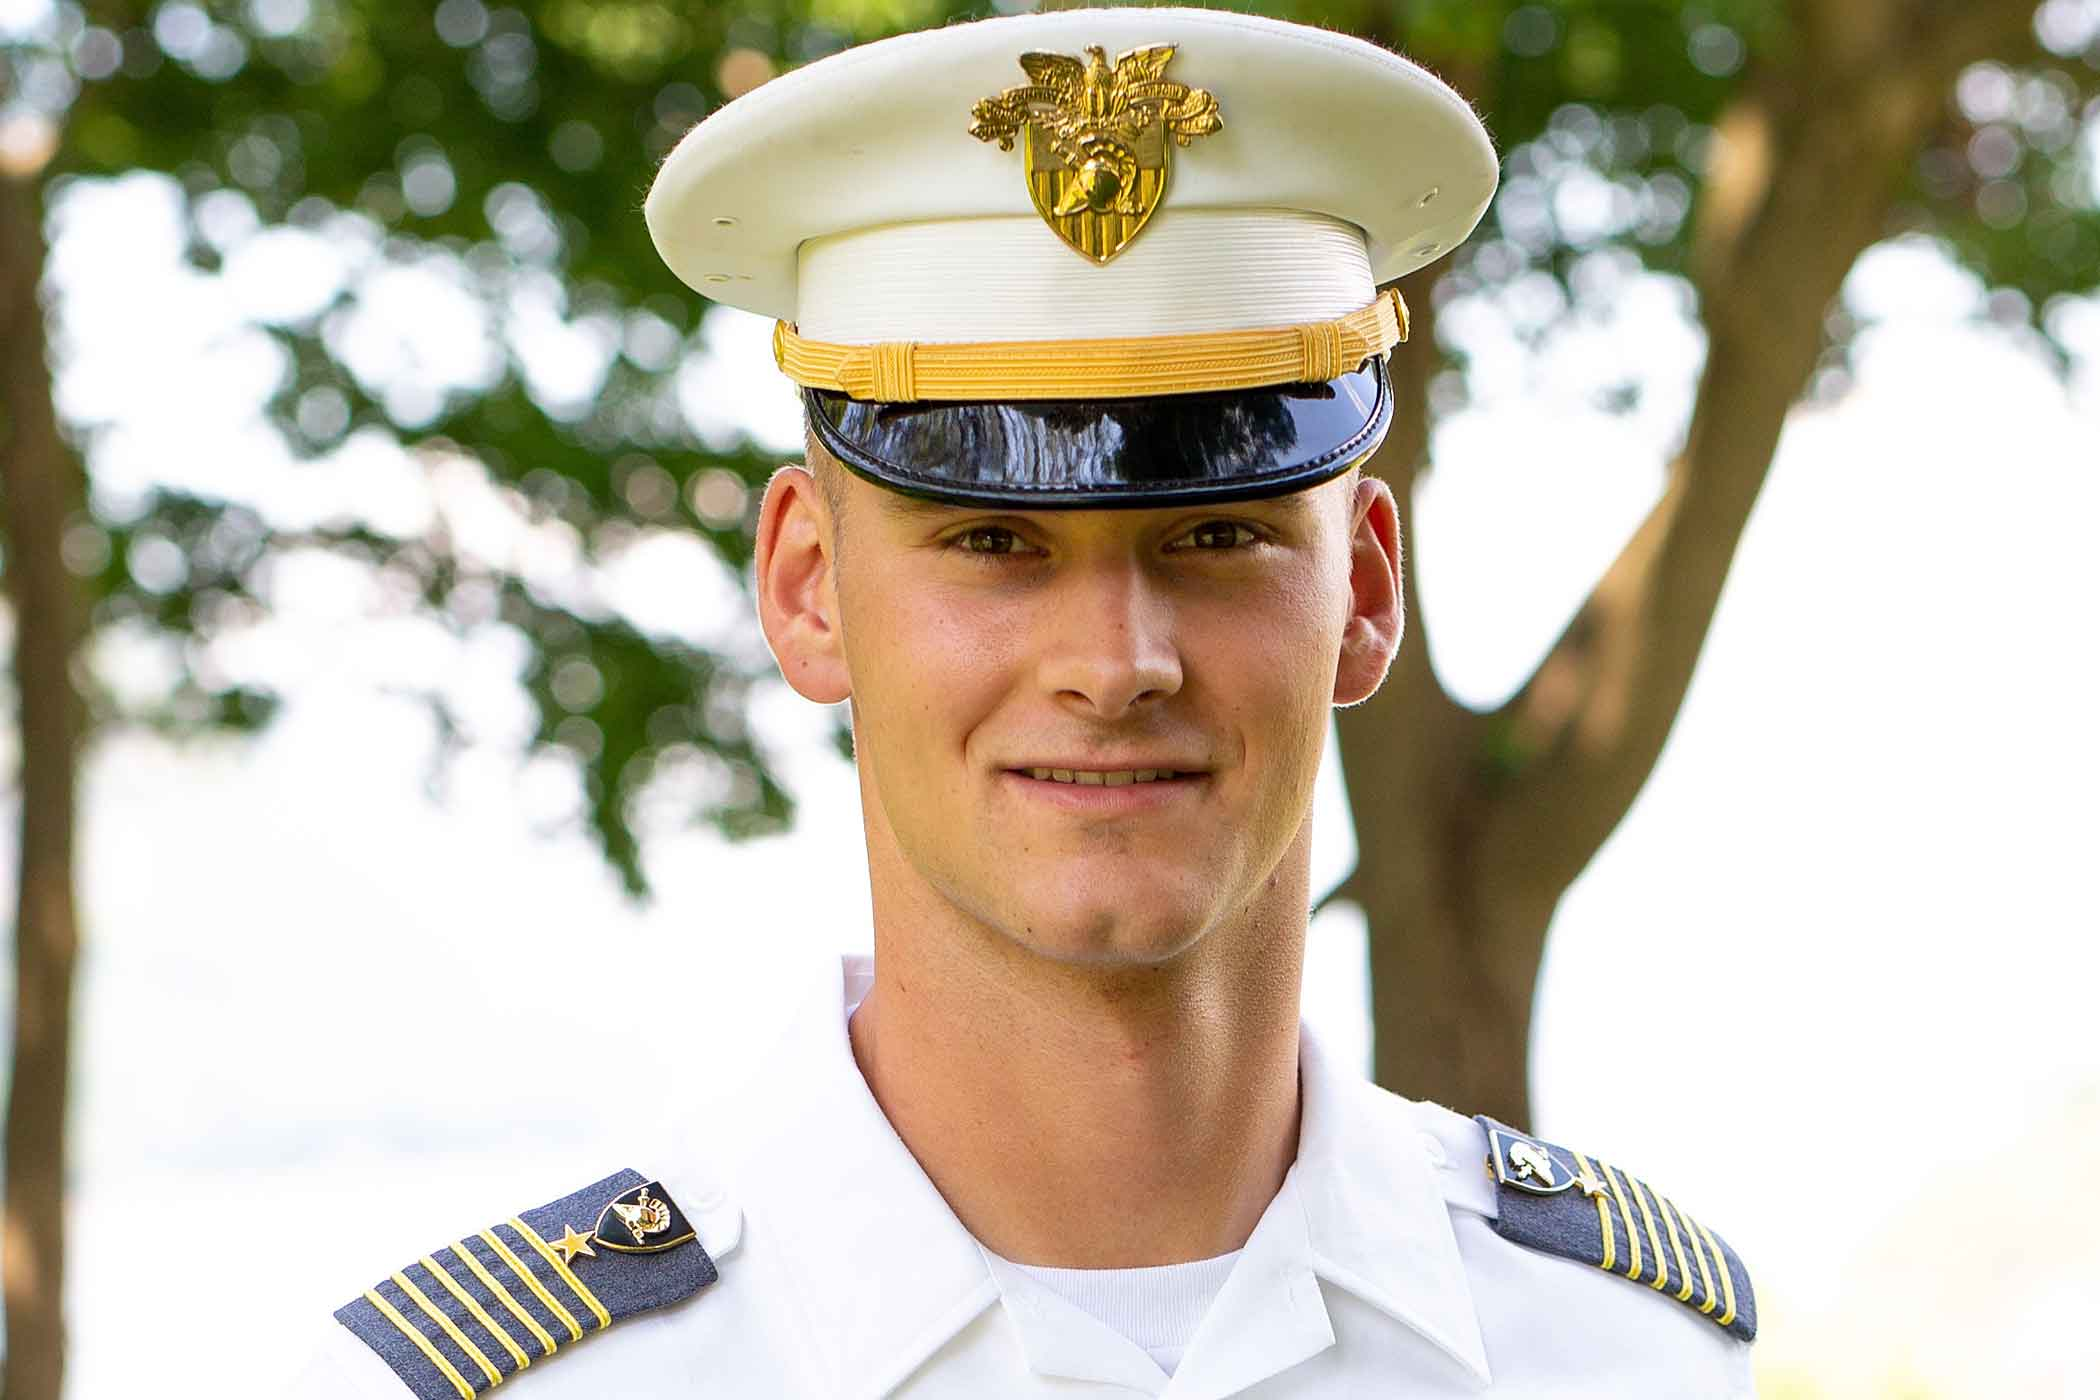 Meet the Only West Point Cadet to Be Named a Rhodes Scholar This Year